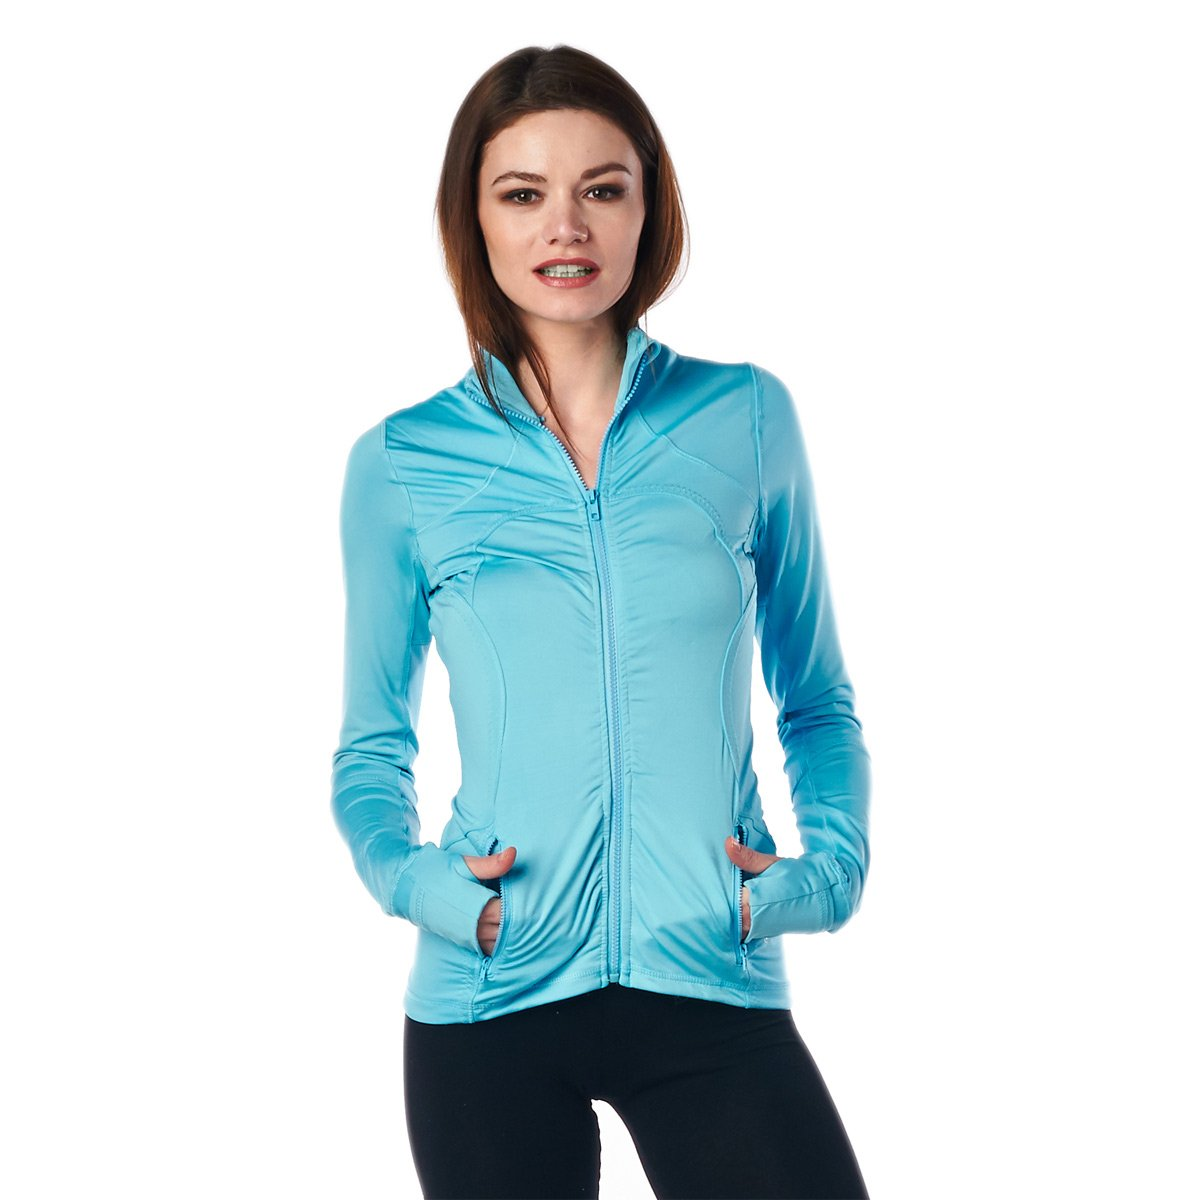 LA Society Womens Yoga Sport Fitness Jacket in Turquoise - Small